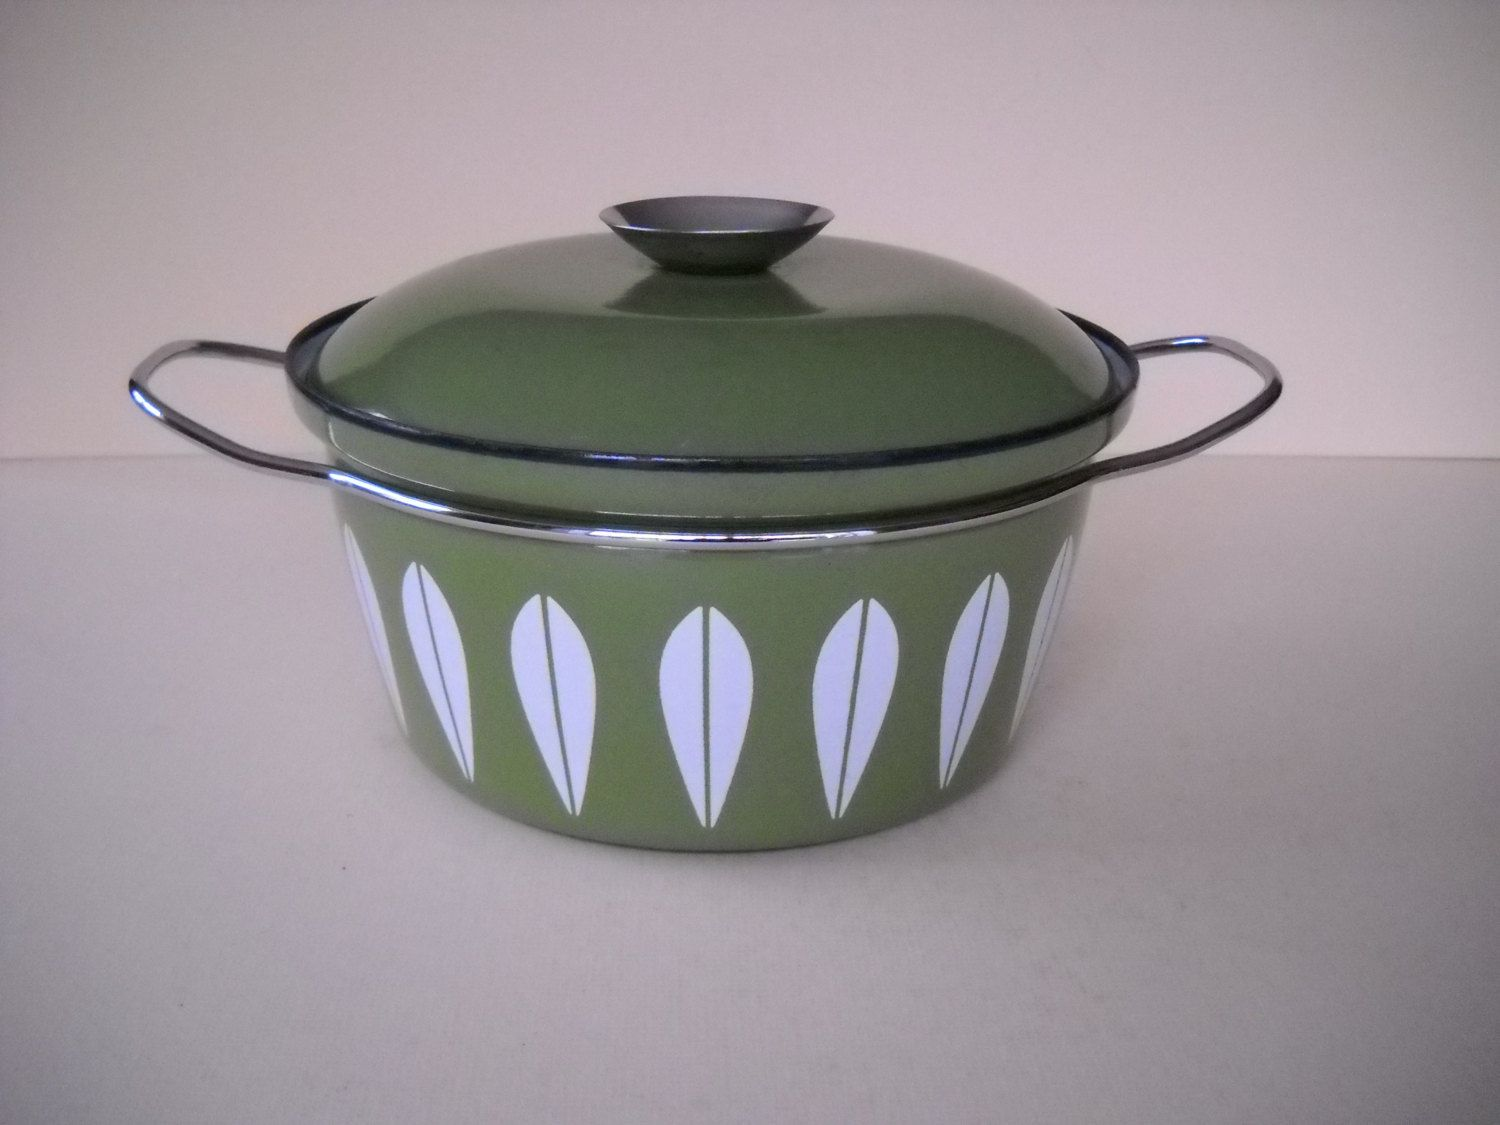 Cathrineholm Norway Lotus Green And White Enamel Stock Pot Dutch Oven Cookware Emalj